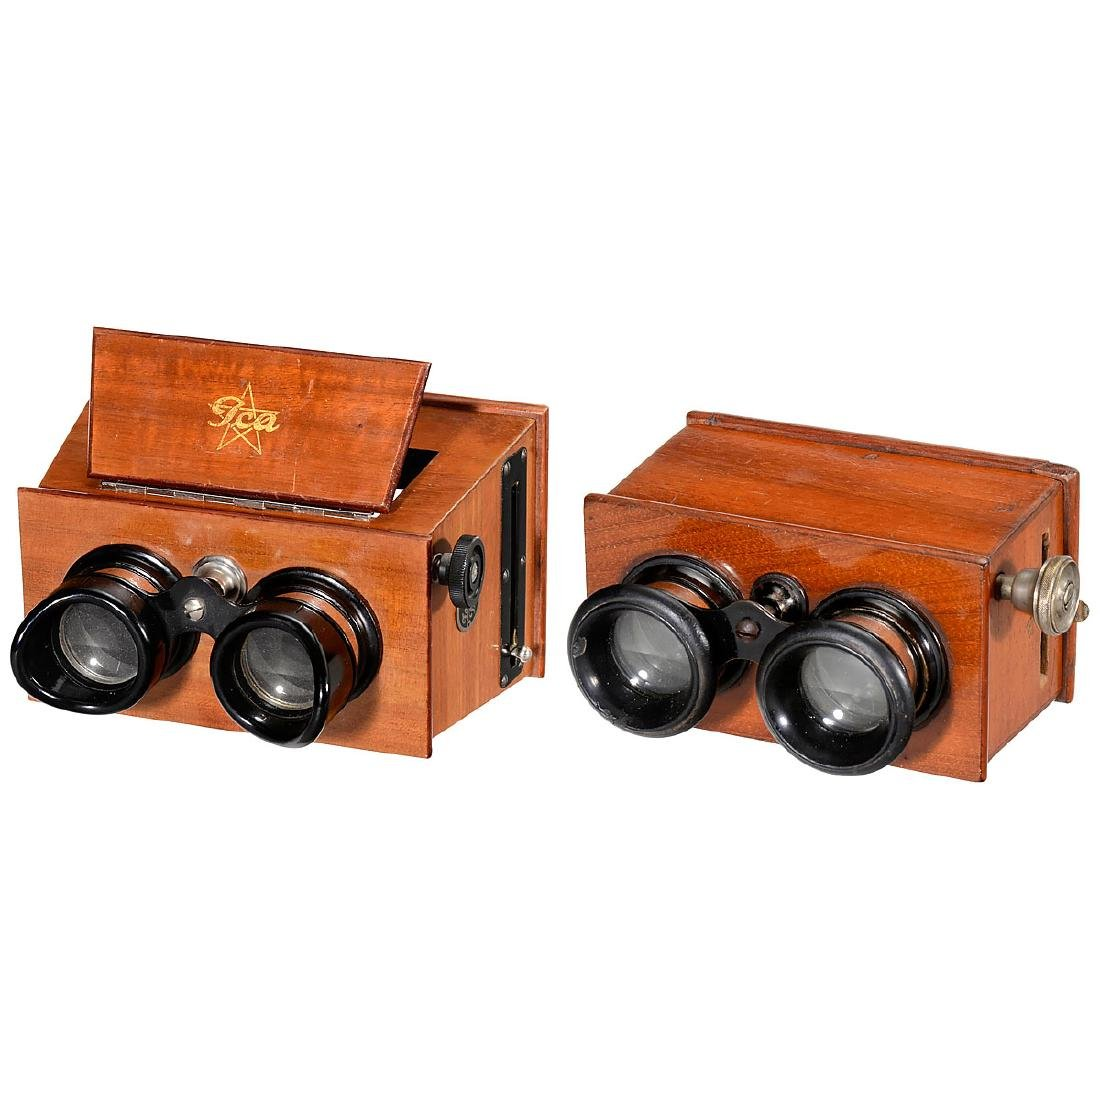 2 Hand Stereo Viewers (6 x 13 and 45 x 107), c. 1926